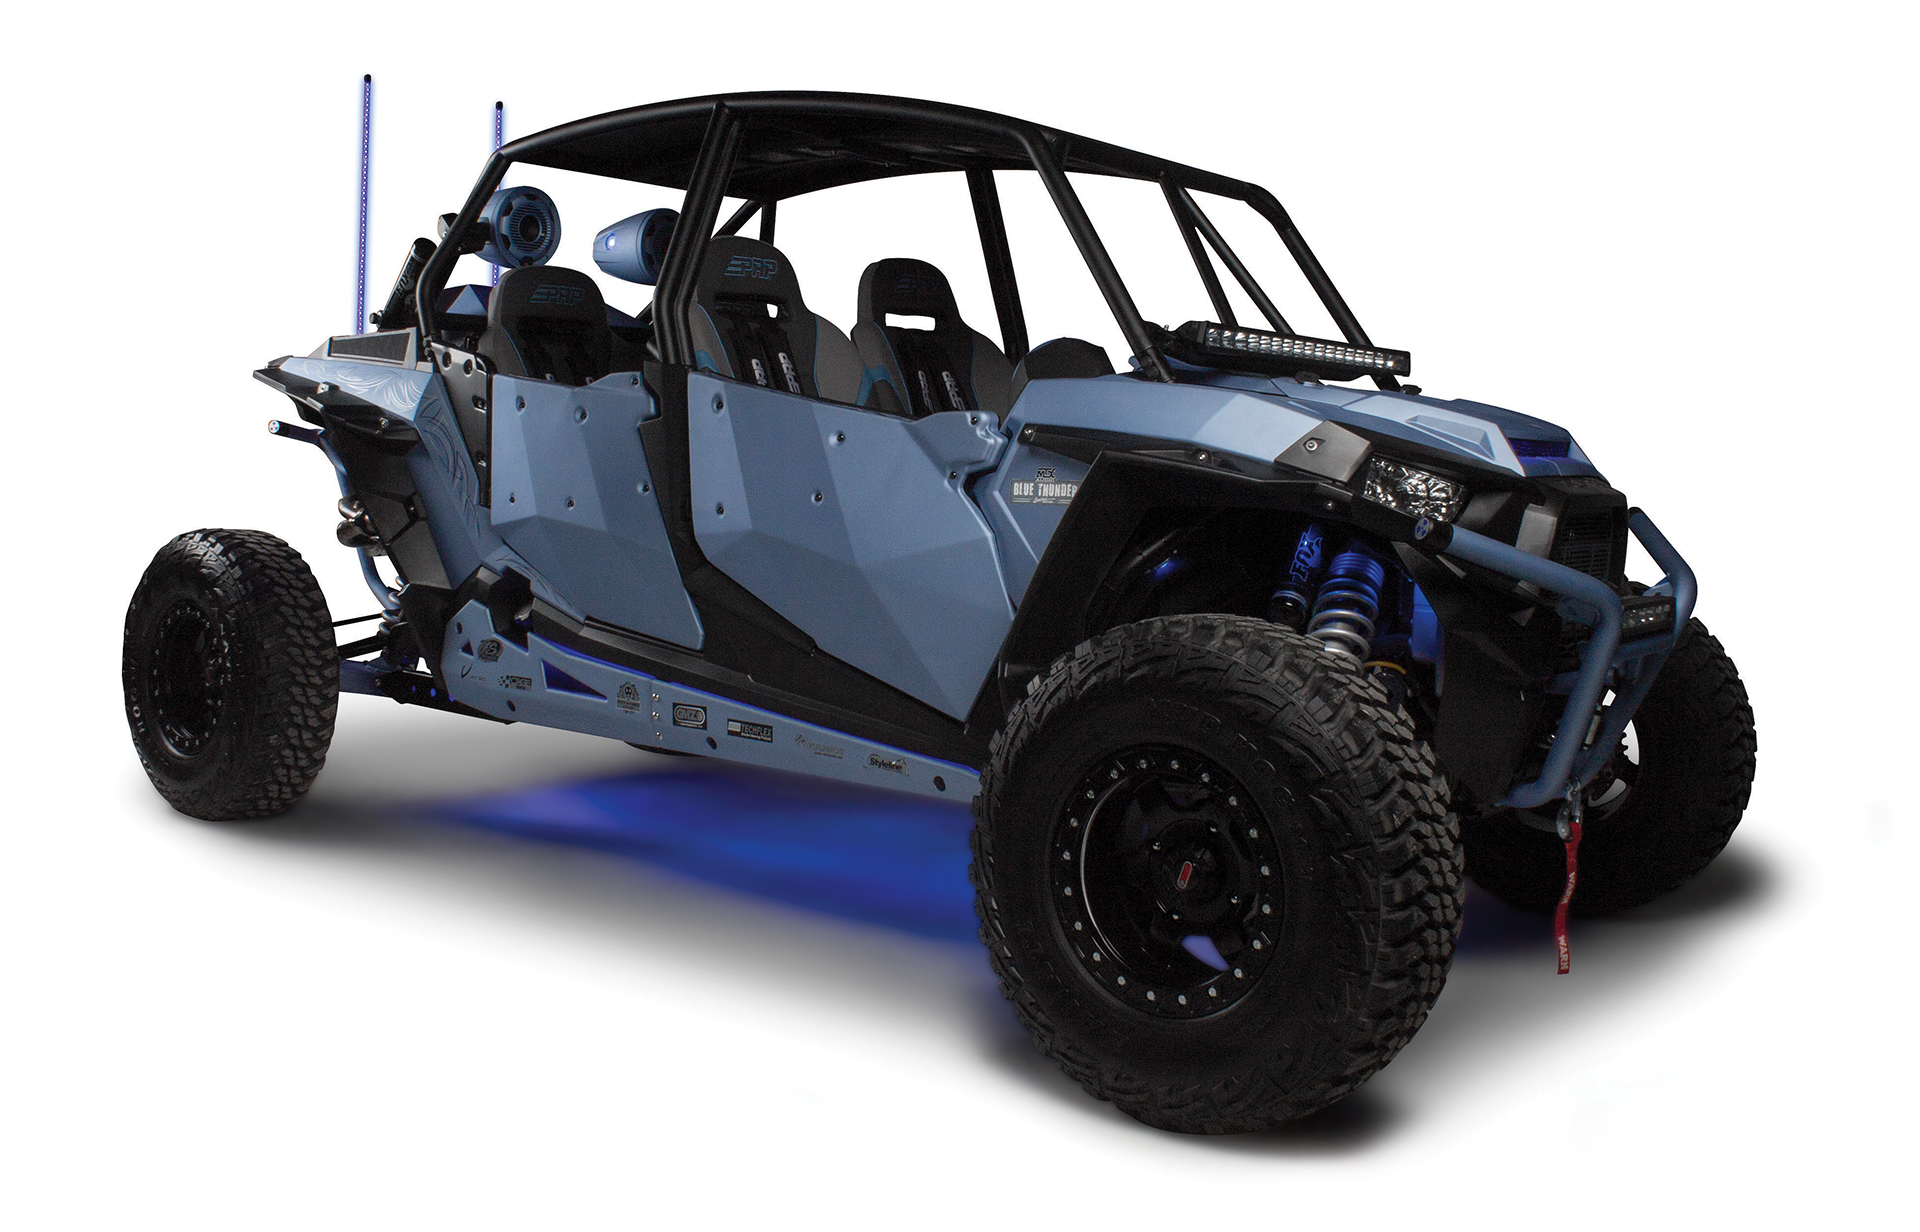 Do I Need a 2nd Battery for My UTV Audio System? | MTX Audio ...  Polaris Ranger Light Bar Wiring Diagram on 2004 polaris ranger wiring diagram, arctic cat wildcat wiring diagram, 2001 arctic cat 400 4x4 wiring diagram, atv ignition switch wiring diagram, honda rancher 420 wiring diagram, polaris ranger 700 maintenance, polaris ranger transmission diagram, predator 500 wiring diagram, outlaw wiring diagram, polaris sportsman 500 wiring, 1999 polaris ranger wiring diagram, polaris ranger parking brake diagram, polaris ranger front differential diagram, polaris ranger 6x6 wiring diagram, 2007 polaris ranger wiring diagram, polaris ranger 700 fuel pump, polaris ranger 700 exhaust, polaris ranger ev wiring diagram, kawasaki brute force 750 wiring diagram, polaris ranger 900 wiring diagram,